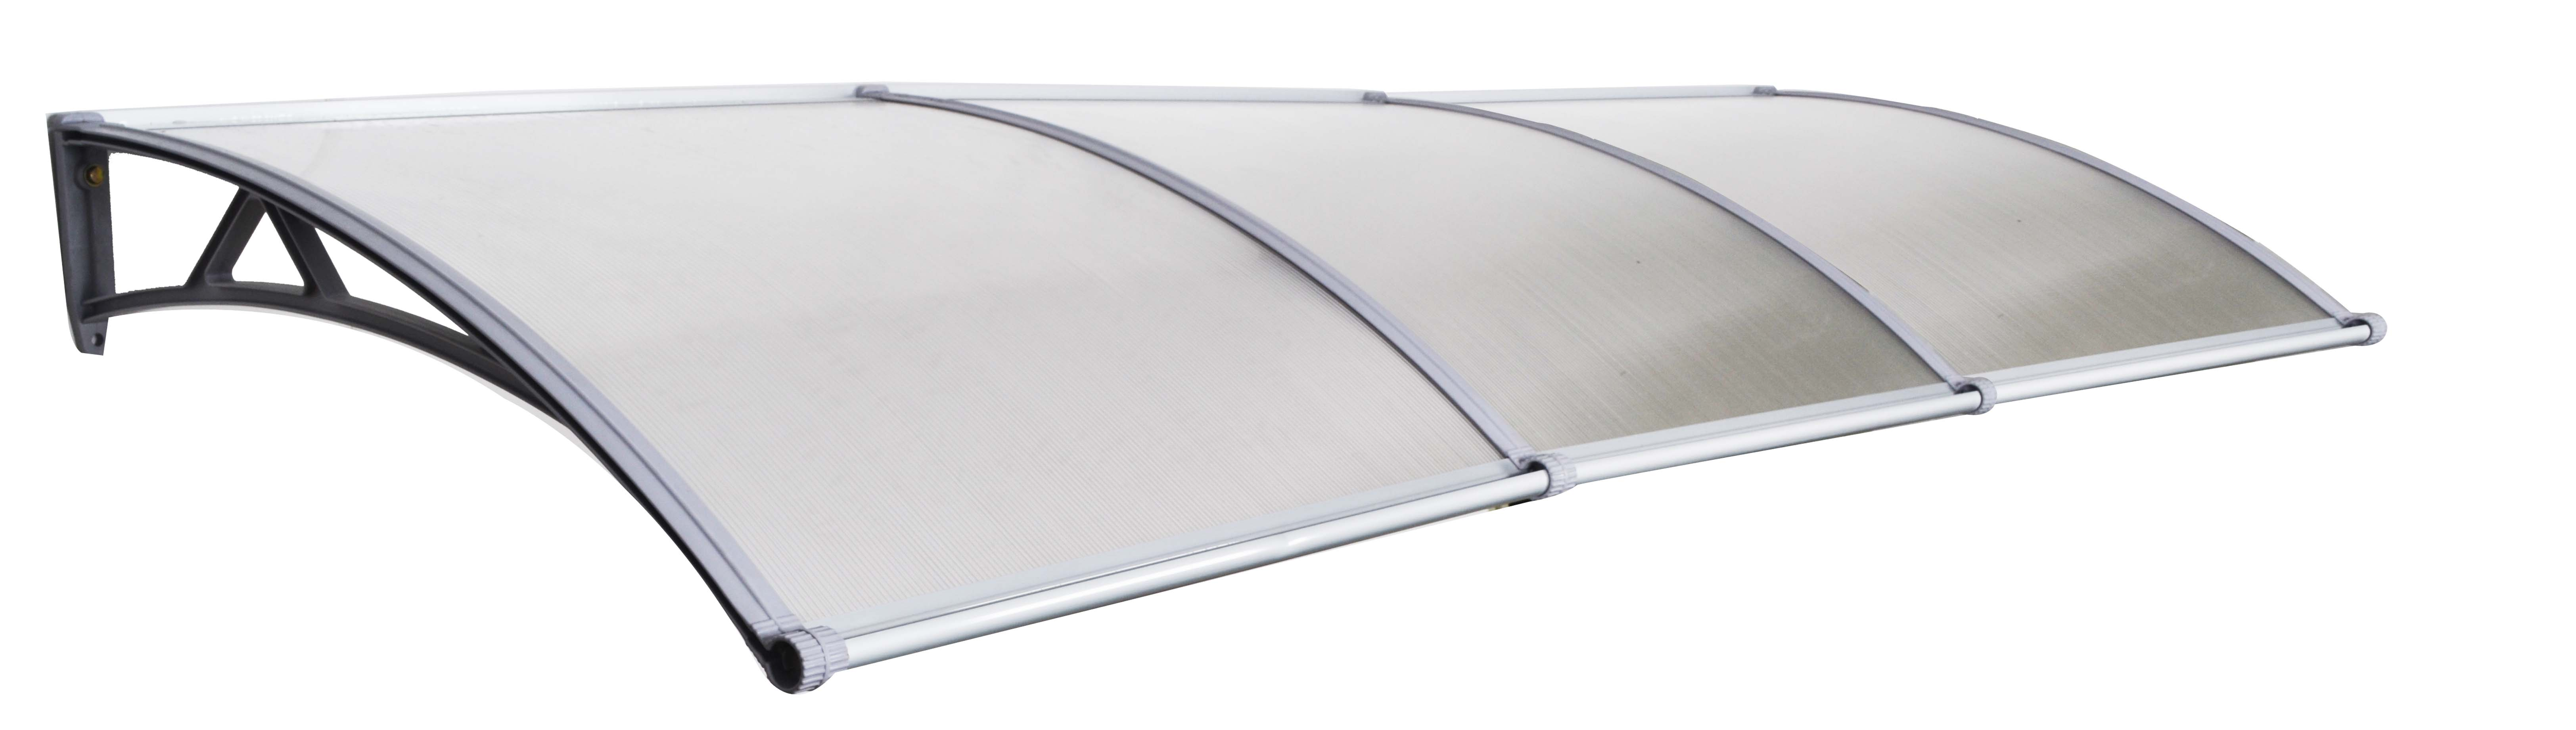 DIY Outdoor Awning Cover 1mx3m with Rain Gutter  Z2387